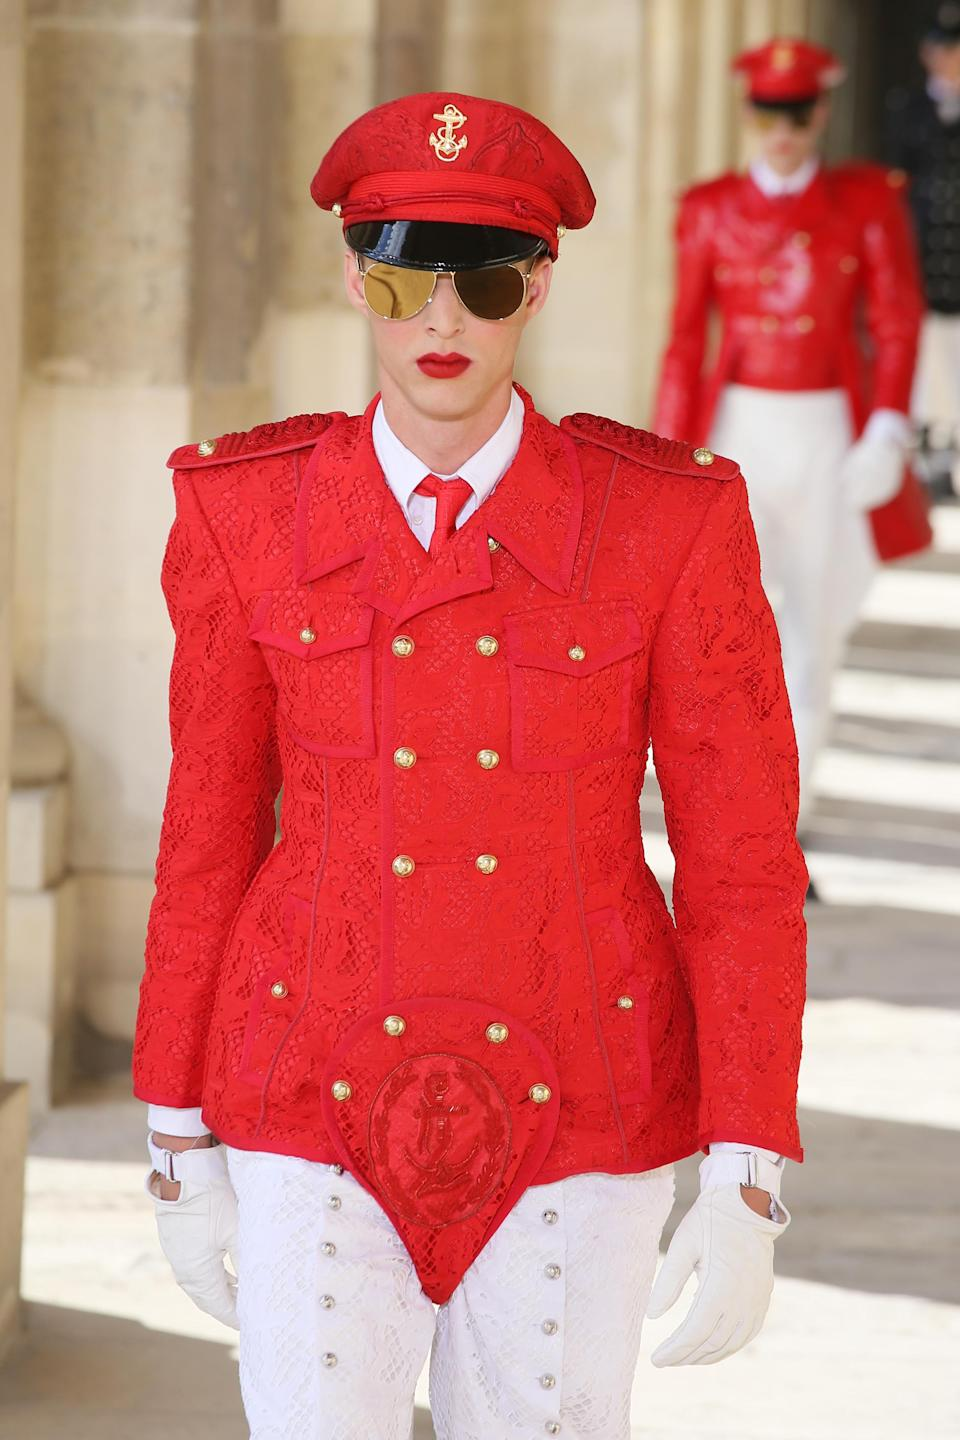 """<div class=""""caption-credit"""">Photo by: Victor Boyko/Getty Images</div>You are looking at the future of menswear, people. It was only a year ago that the boldest men's runway look was a maxi skirt. On Sunday, Thom Browne made the leap to fire-engine-red male leotards. How far we've come. Let's revisit this show in a few slides, once you've recovered from the initial shock, shall we? <br>"""